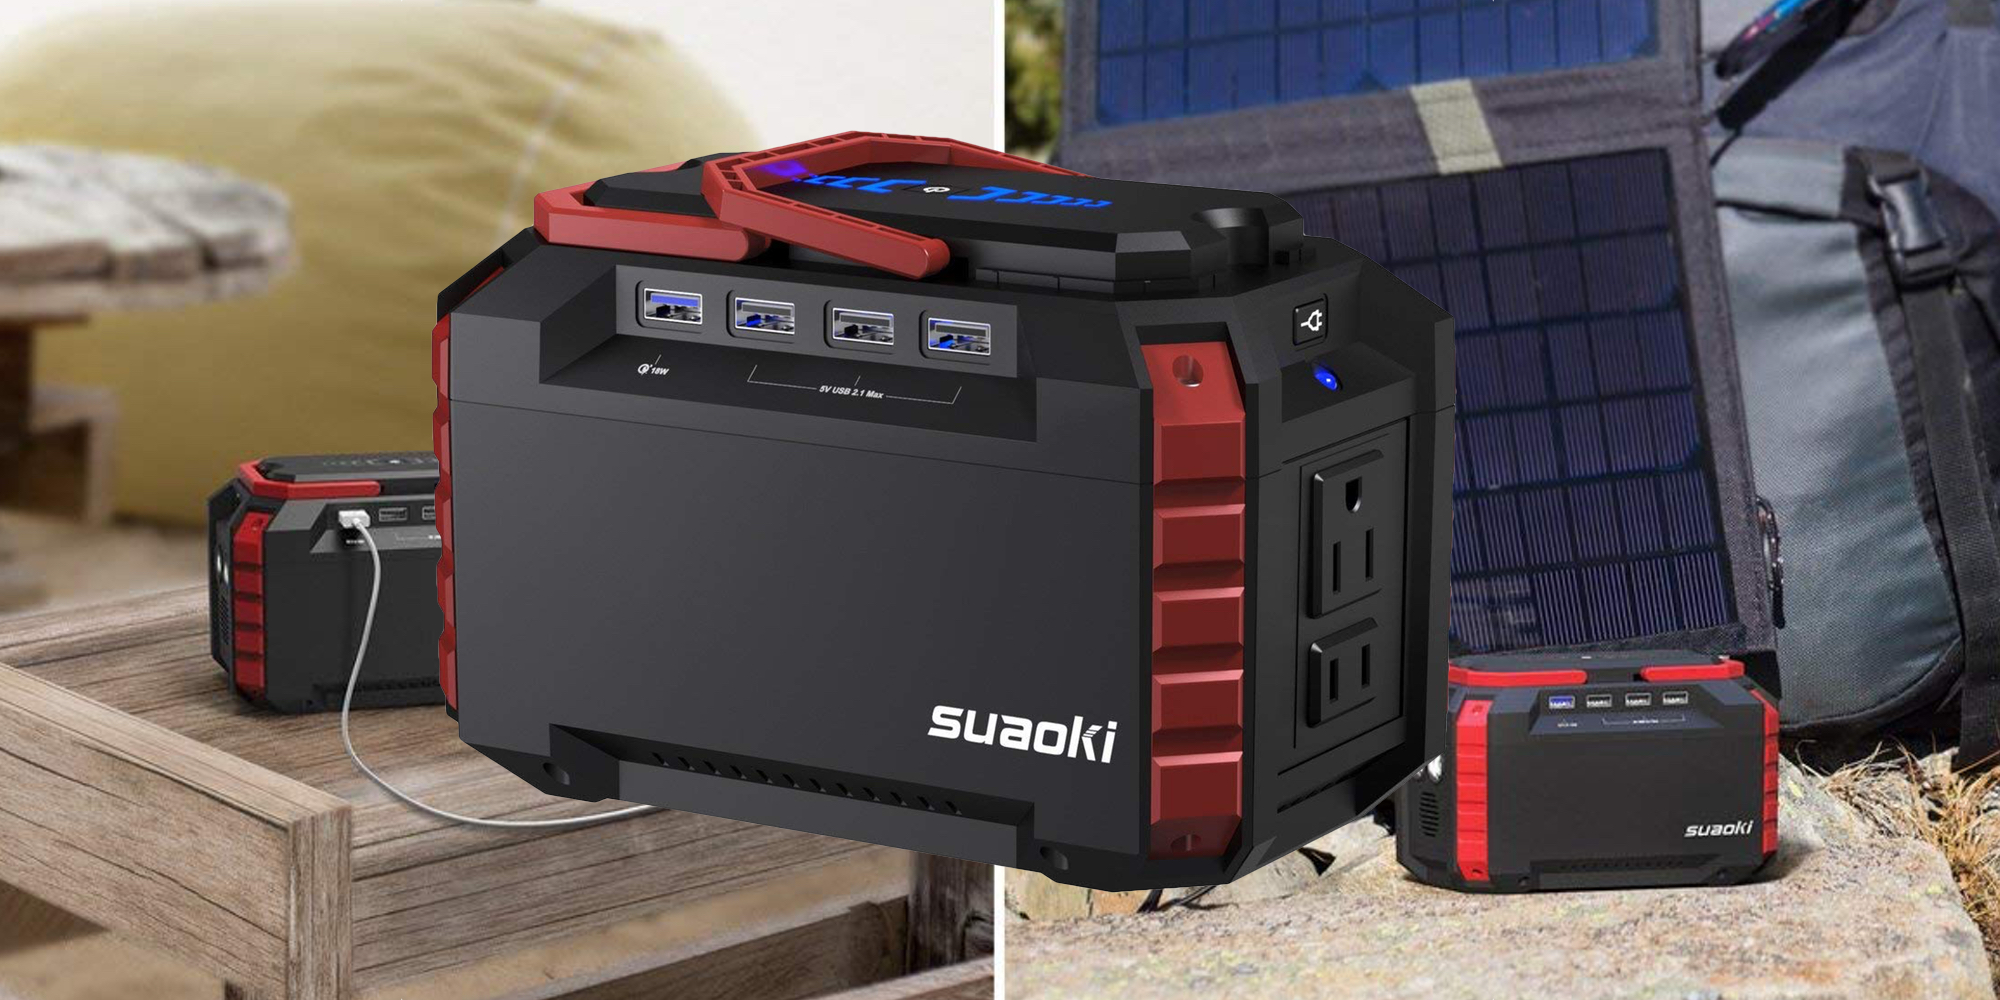 Suaoki's Power Station keeps your gear running w/ a 40500mAh battery at $105 (25% off)